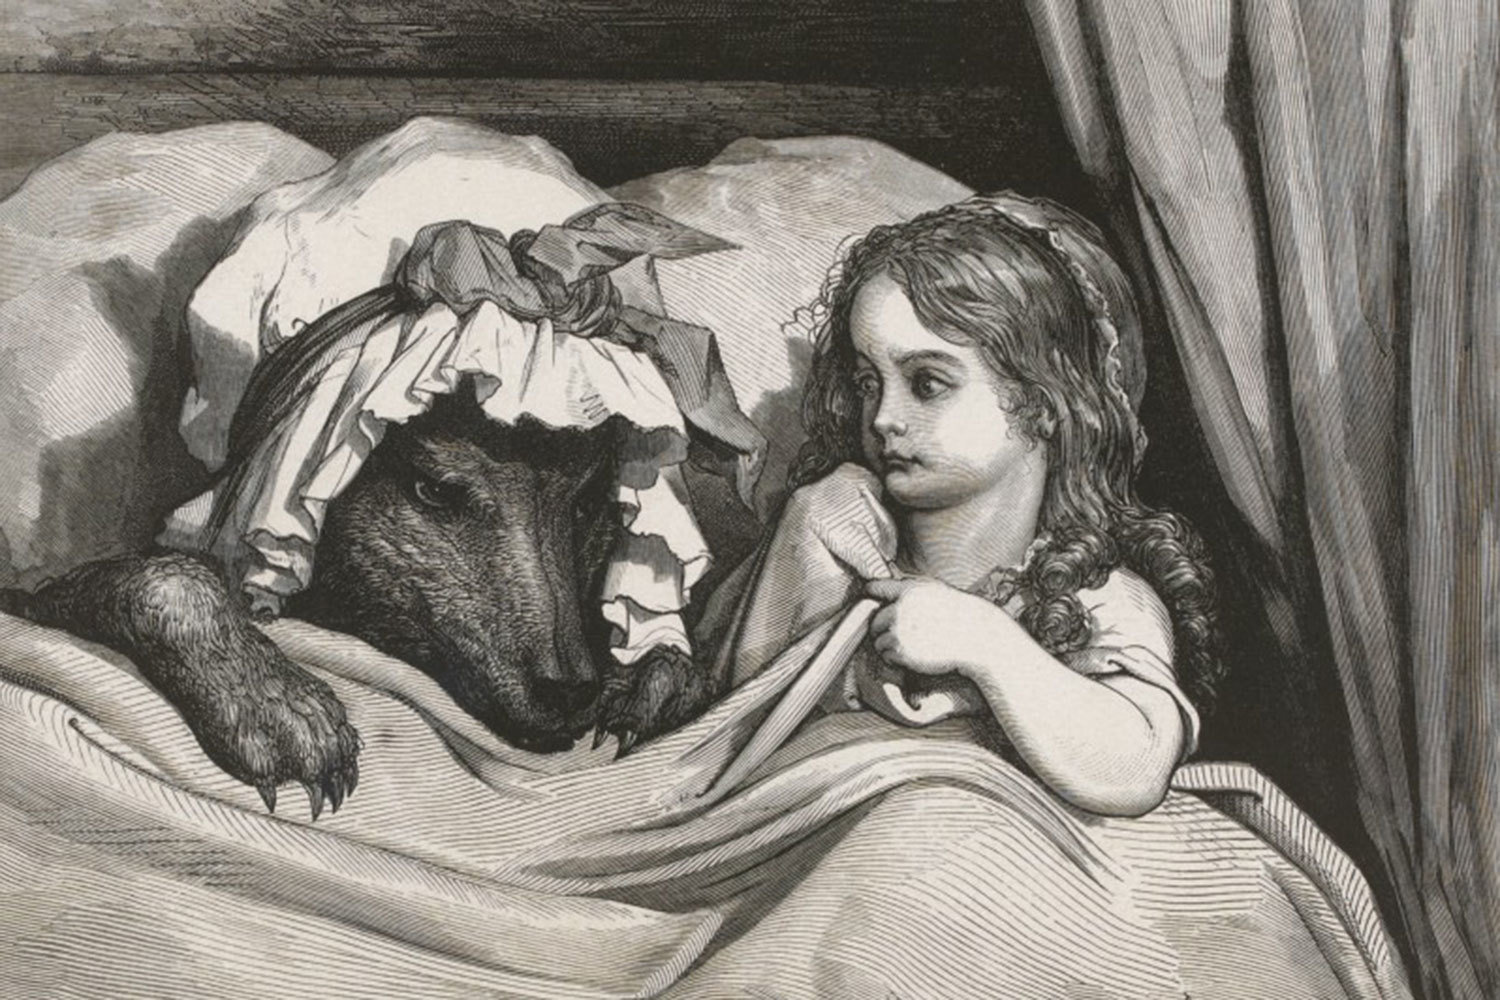 Les contes de Perrault [Perrault's Fairy Tales], 1862, Illustrated by Gustave Doré, Bibliothèque nationale de France, No Copyright - Other Known Legal Restrictions